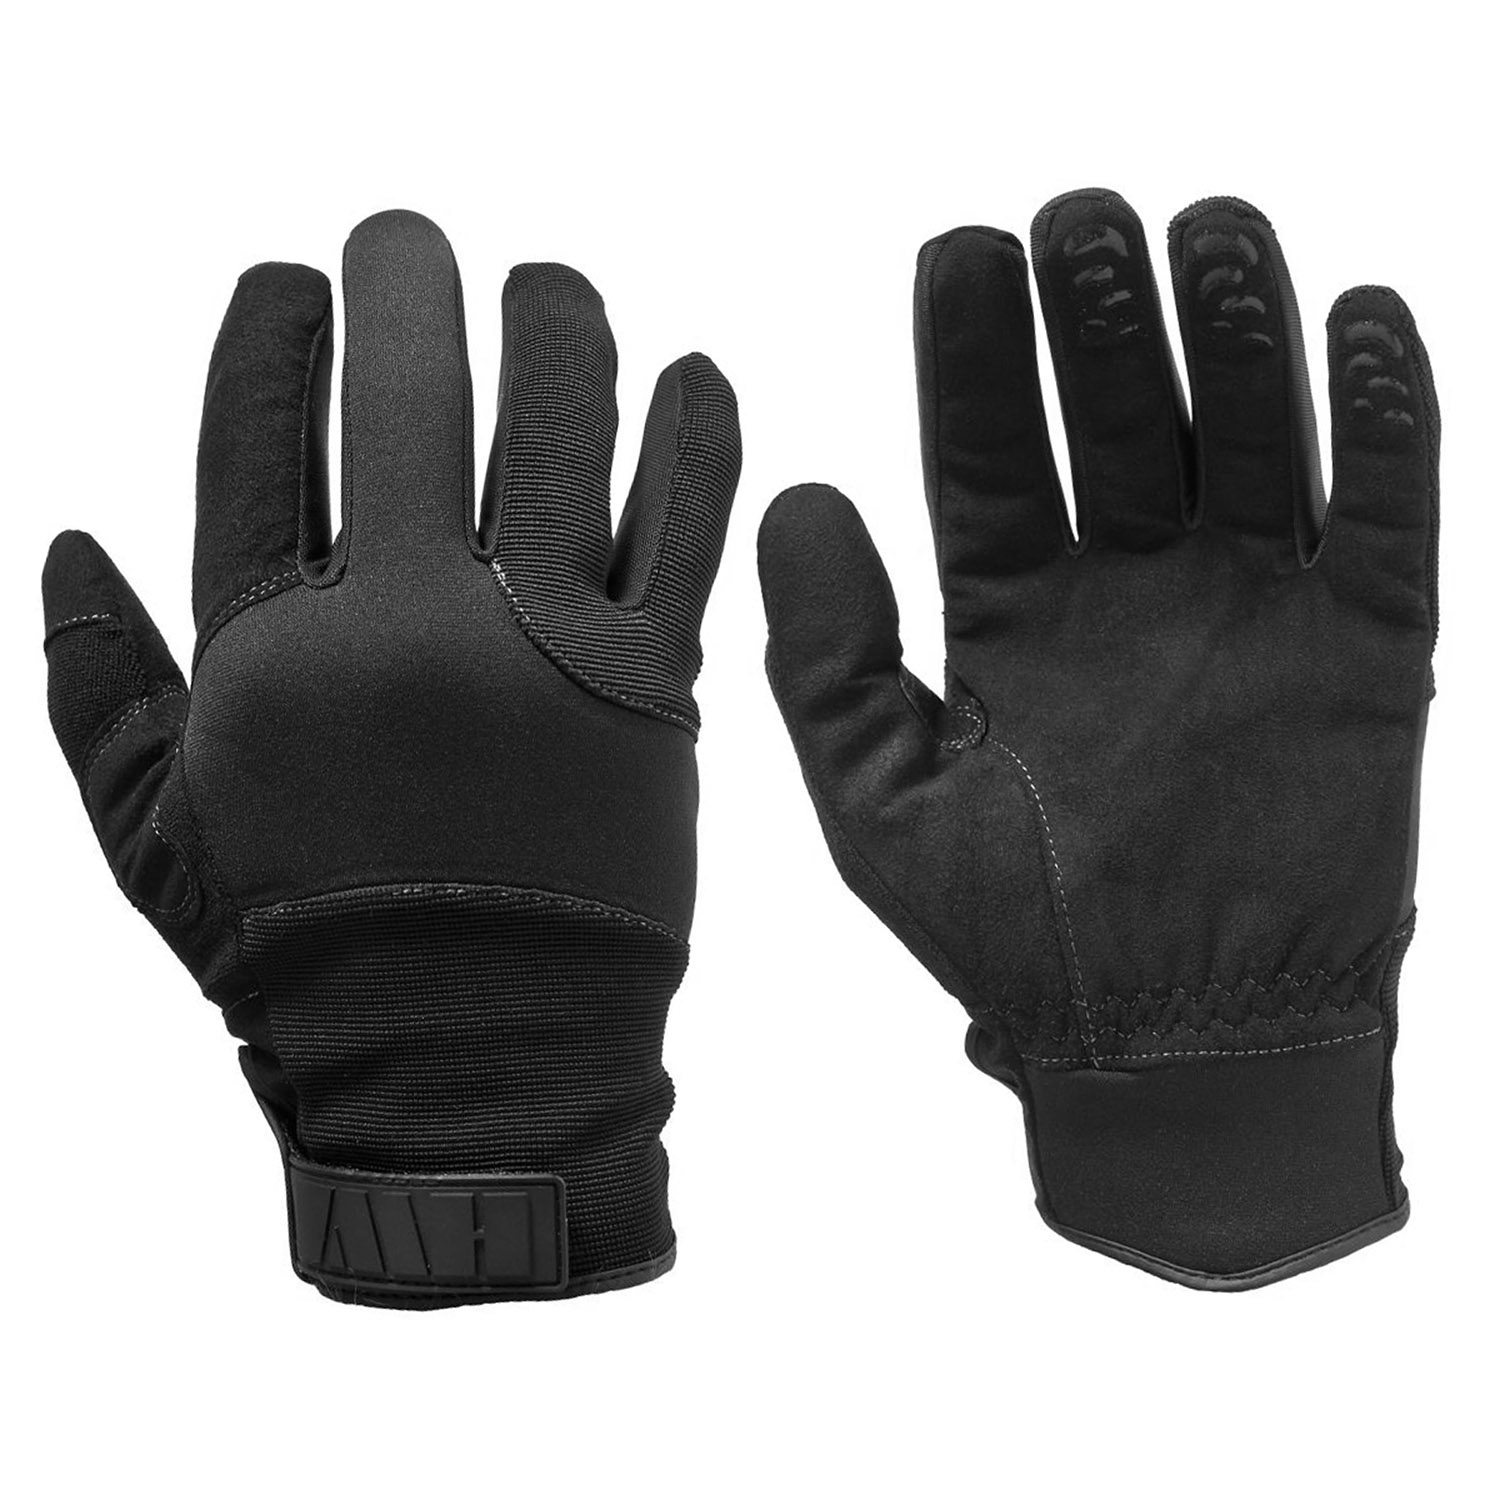 HWI Gear Kevlar Palm Duty Gloves